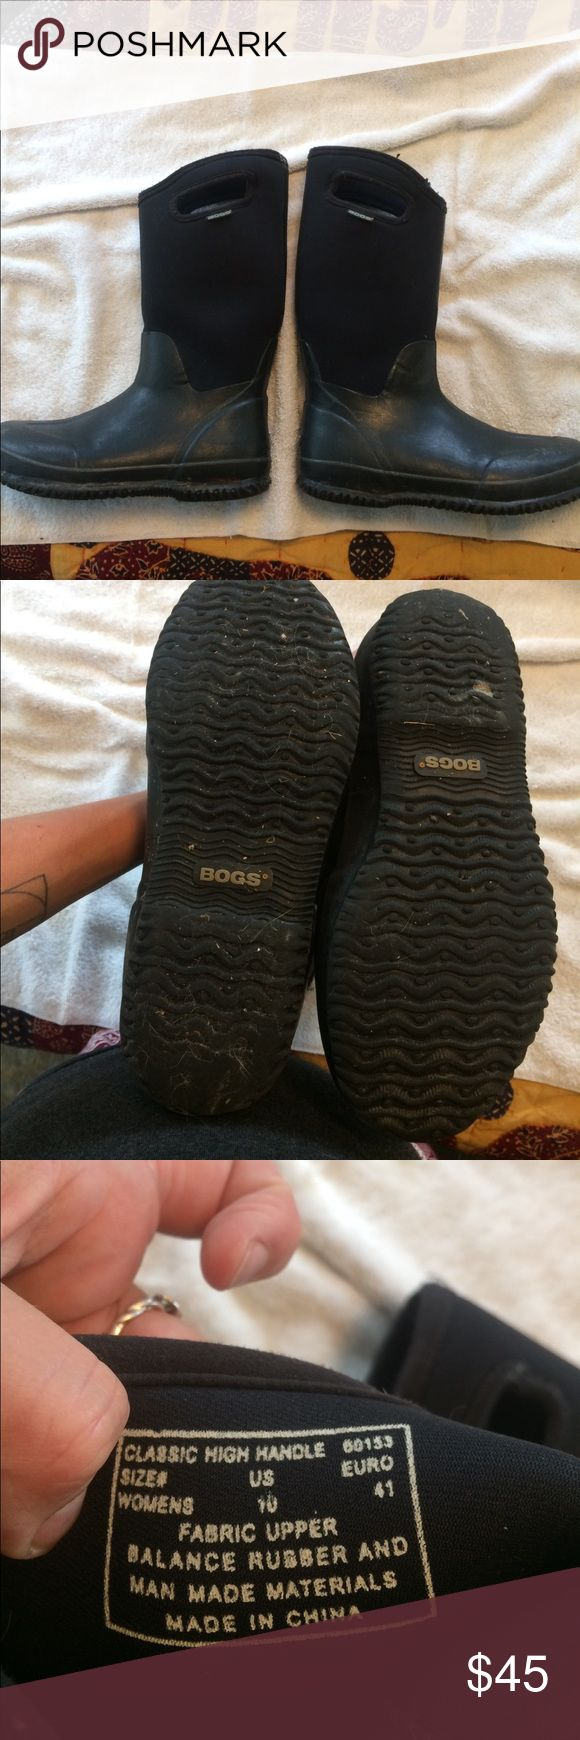 Bogs mud boots. Slightly worn and very functional pull-on mud boots. Women's size 10. There is abut of orange paint on the sole on one that will come off. Handles are a bit worn but not compromised. Bogs Shoes Winter & Rain Boots